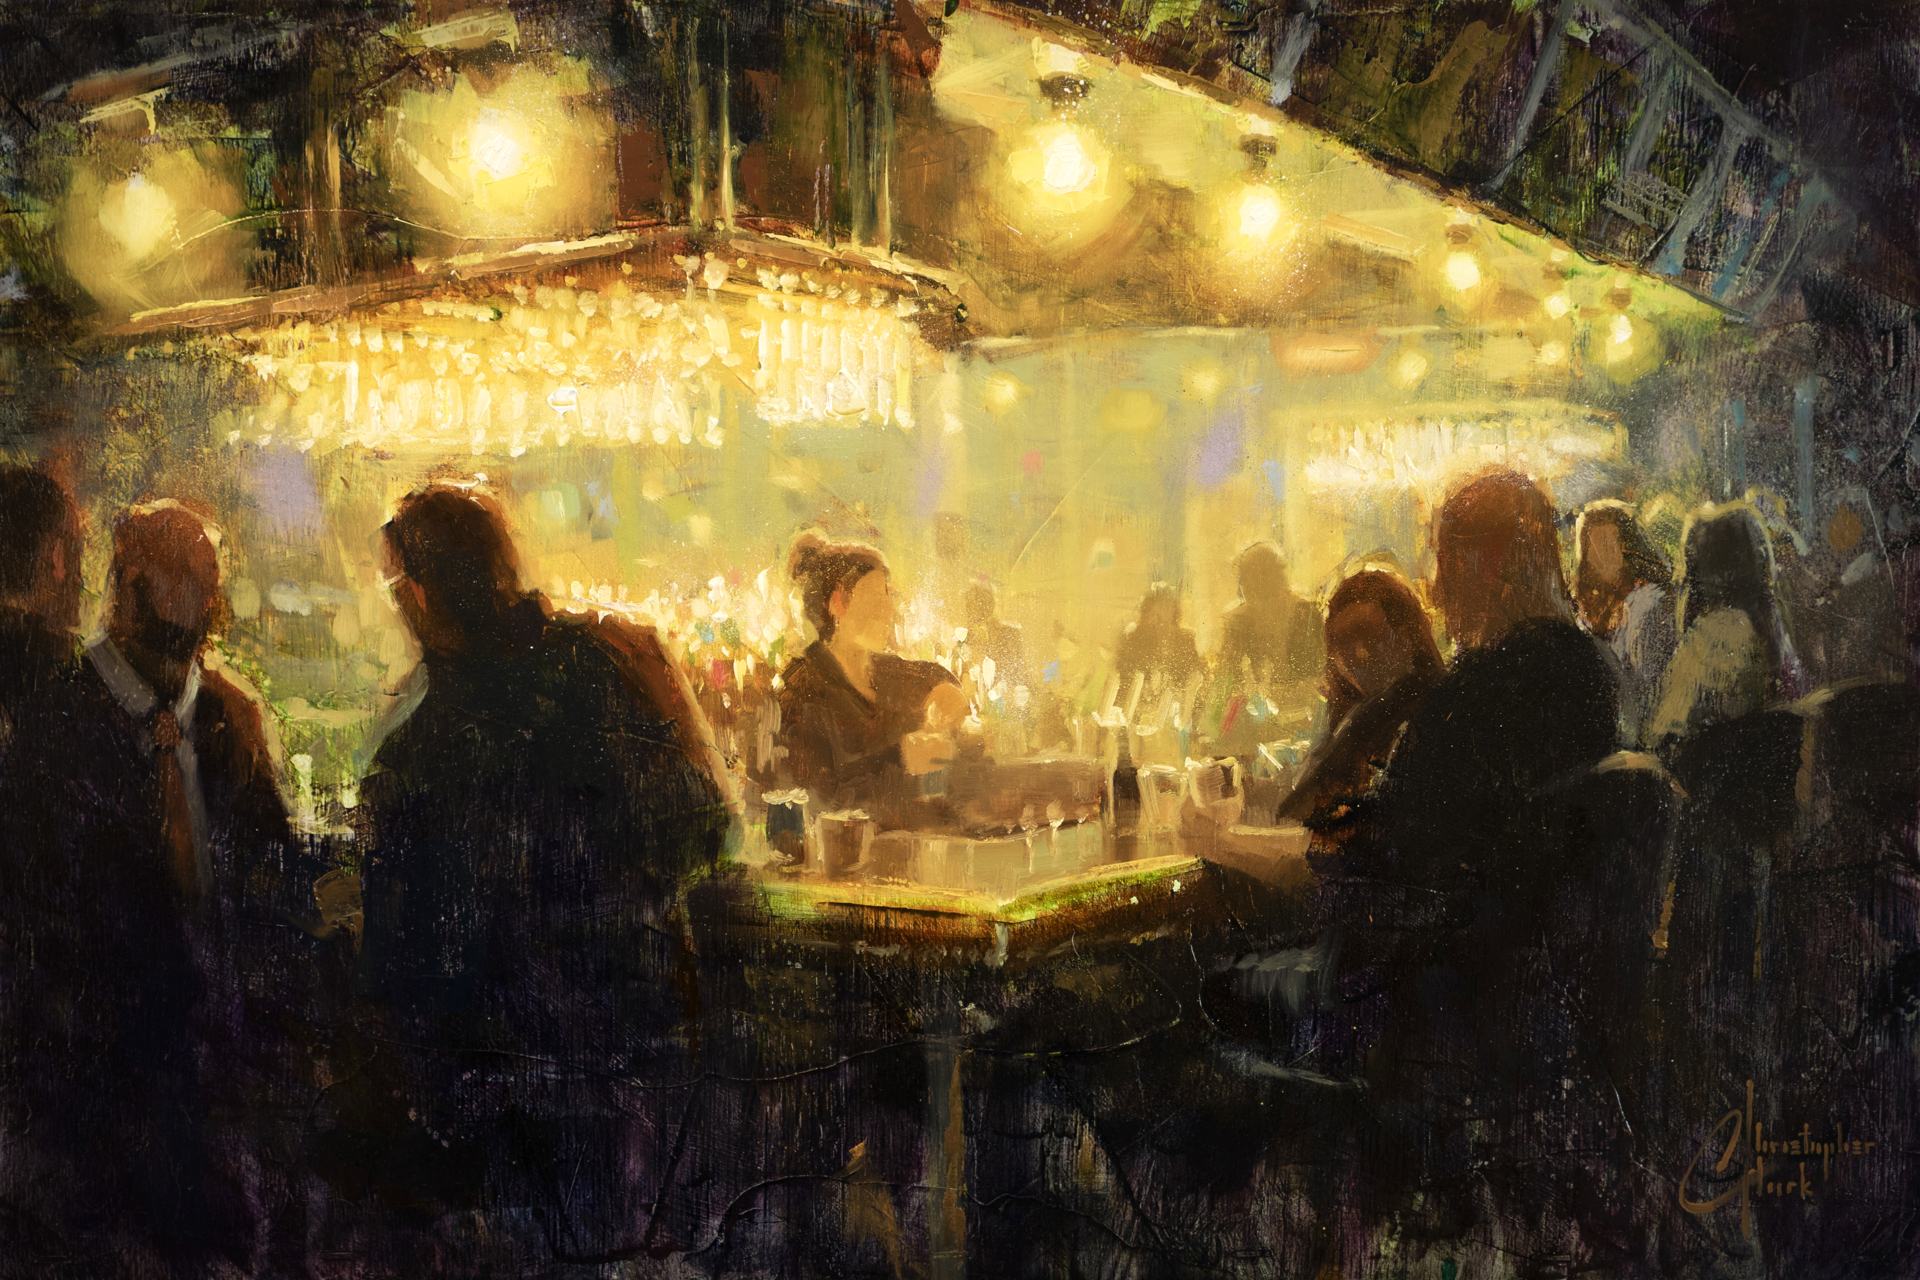 Night out With Friends by Christopher Clark